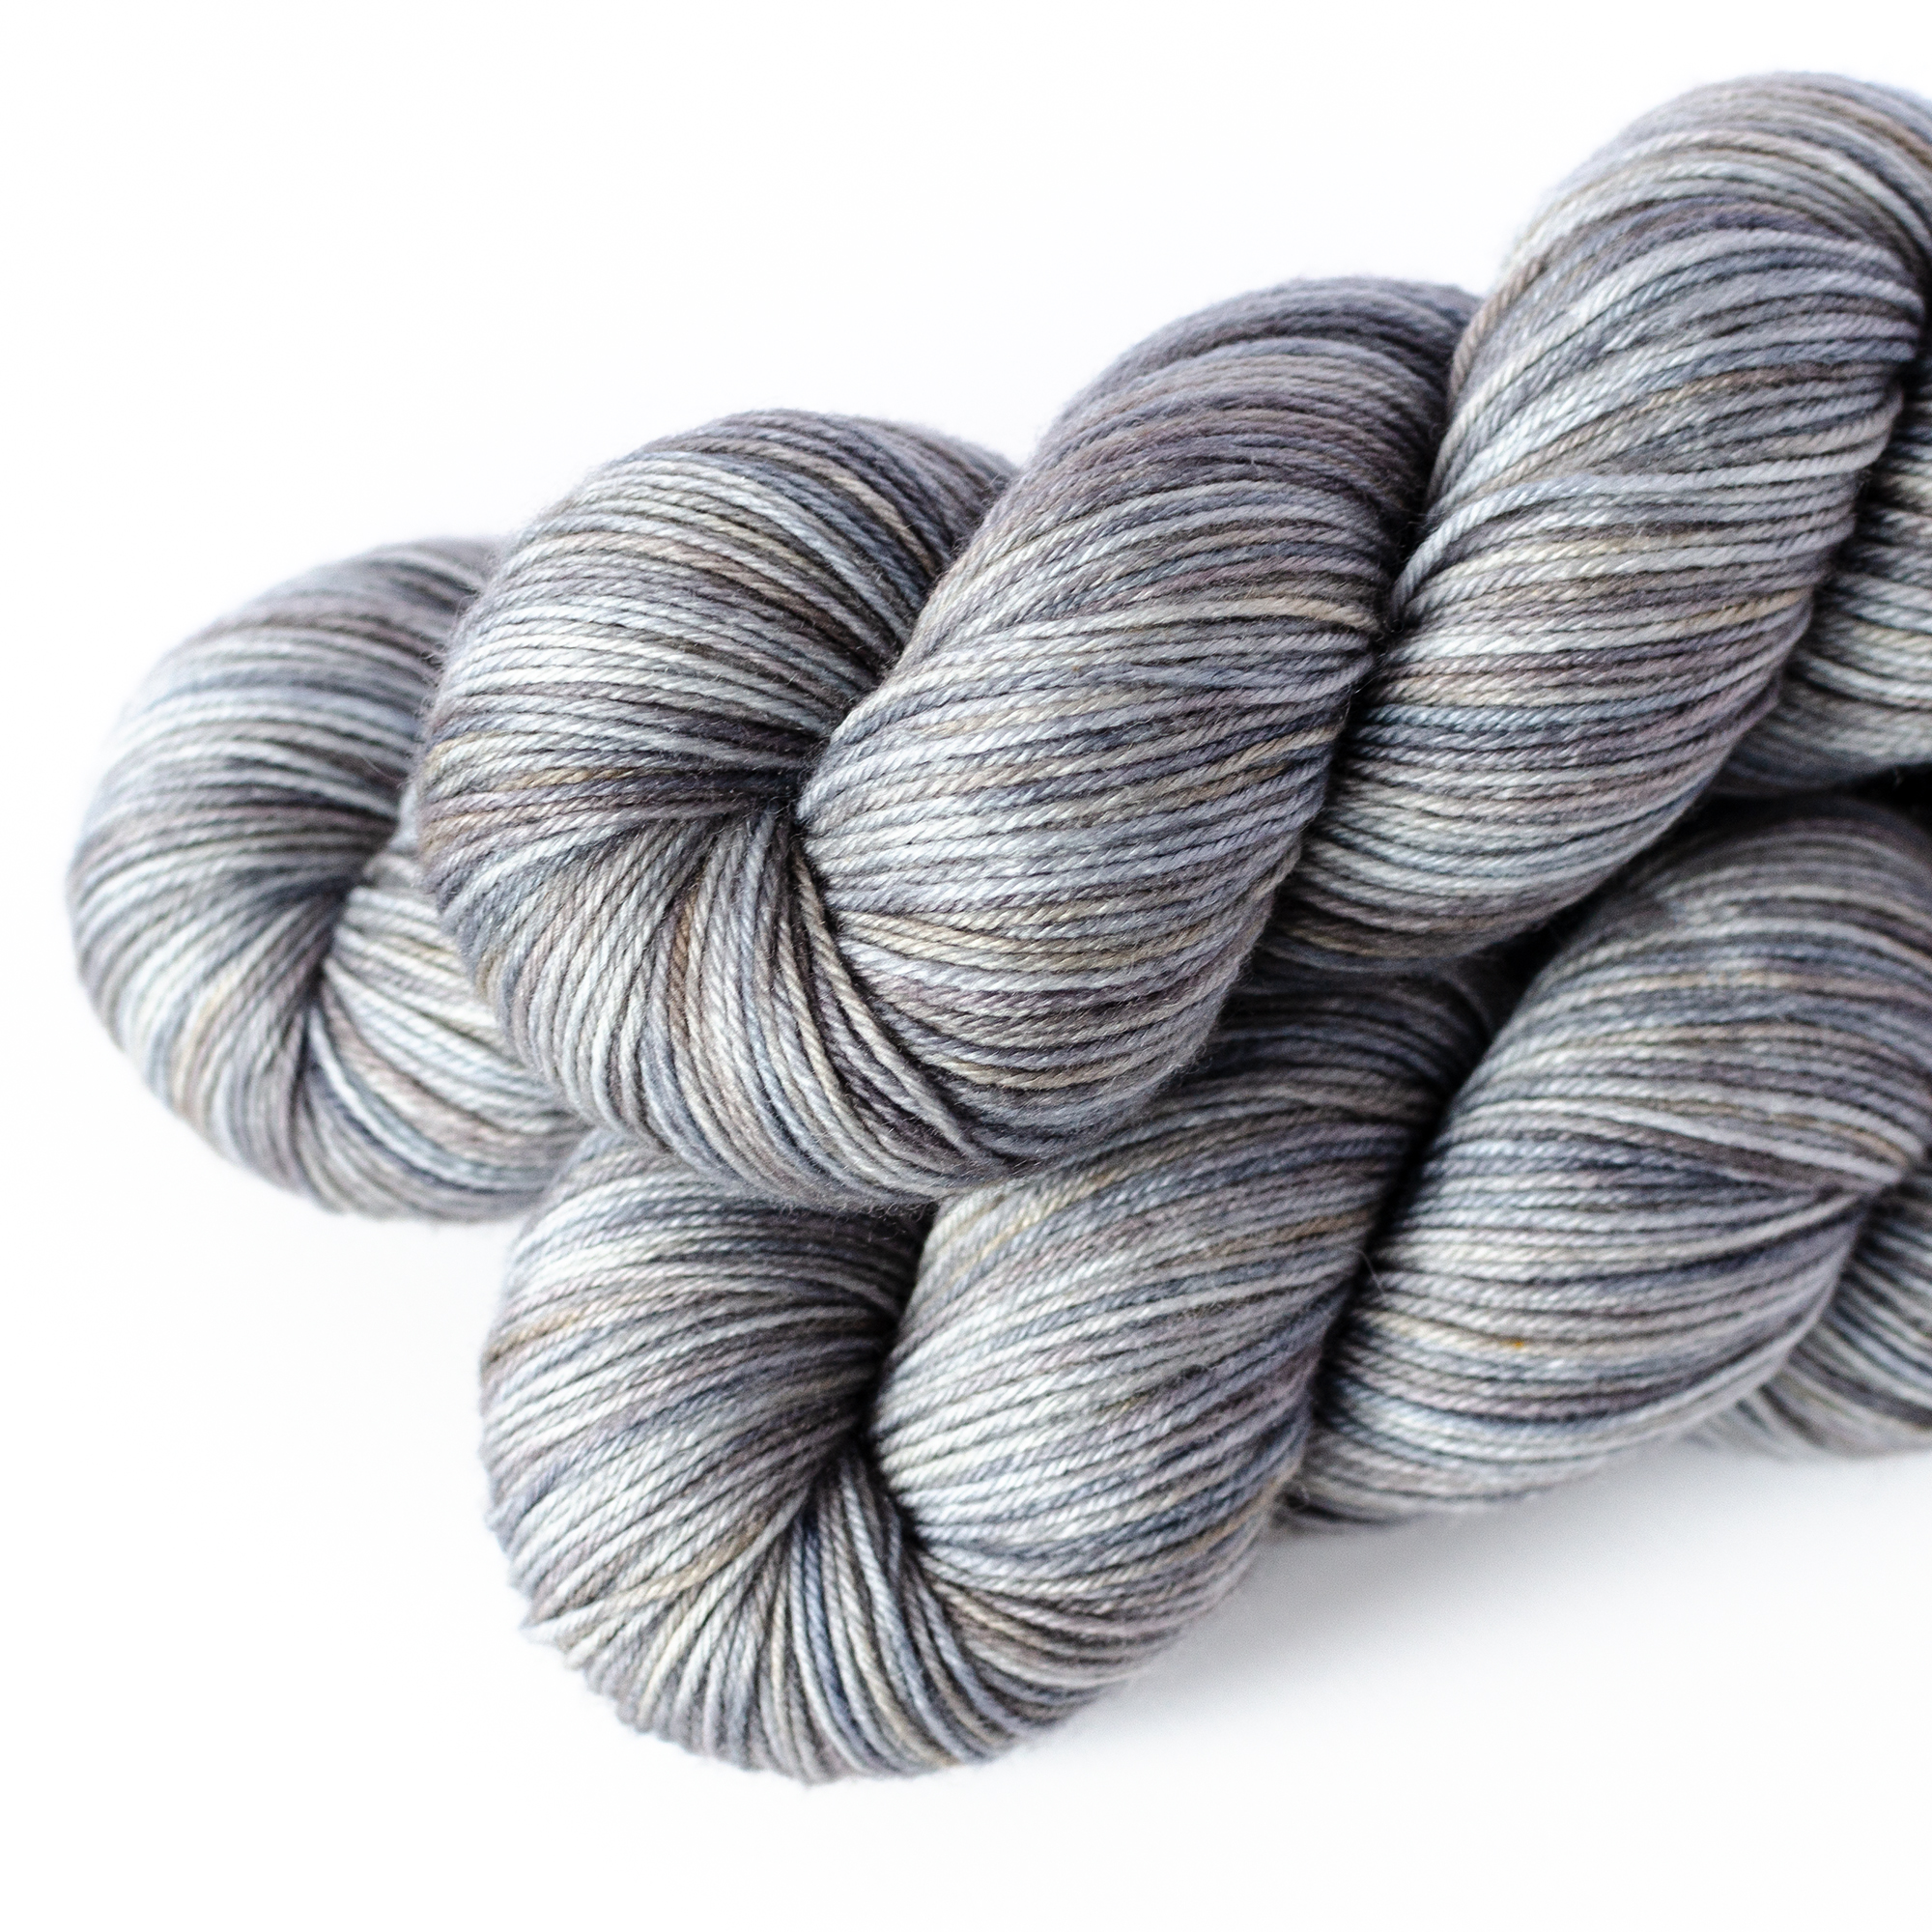 MCN Sock - $29  80% SW Merino, 10% Cashmere, 10% Nylon  4 plies  435 yards / 398 meters  100 grams  Fingering Weight  US 1-5 / 2.25-3.75mm  Hand wash / Dry flat  This yarn is soft, smooth, and lofty.